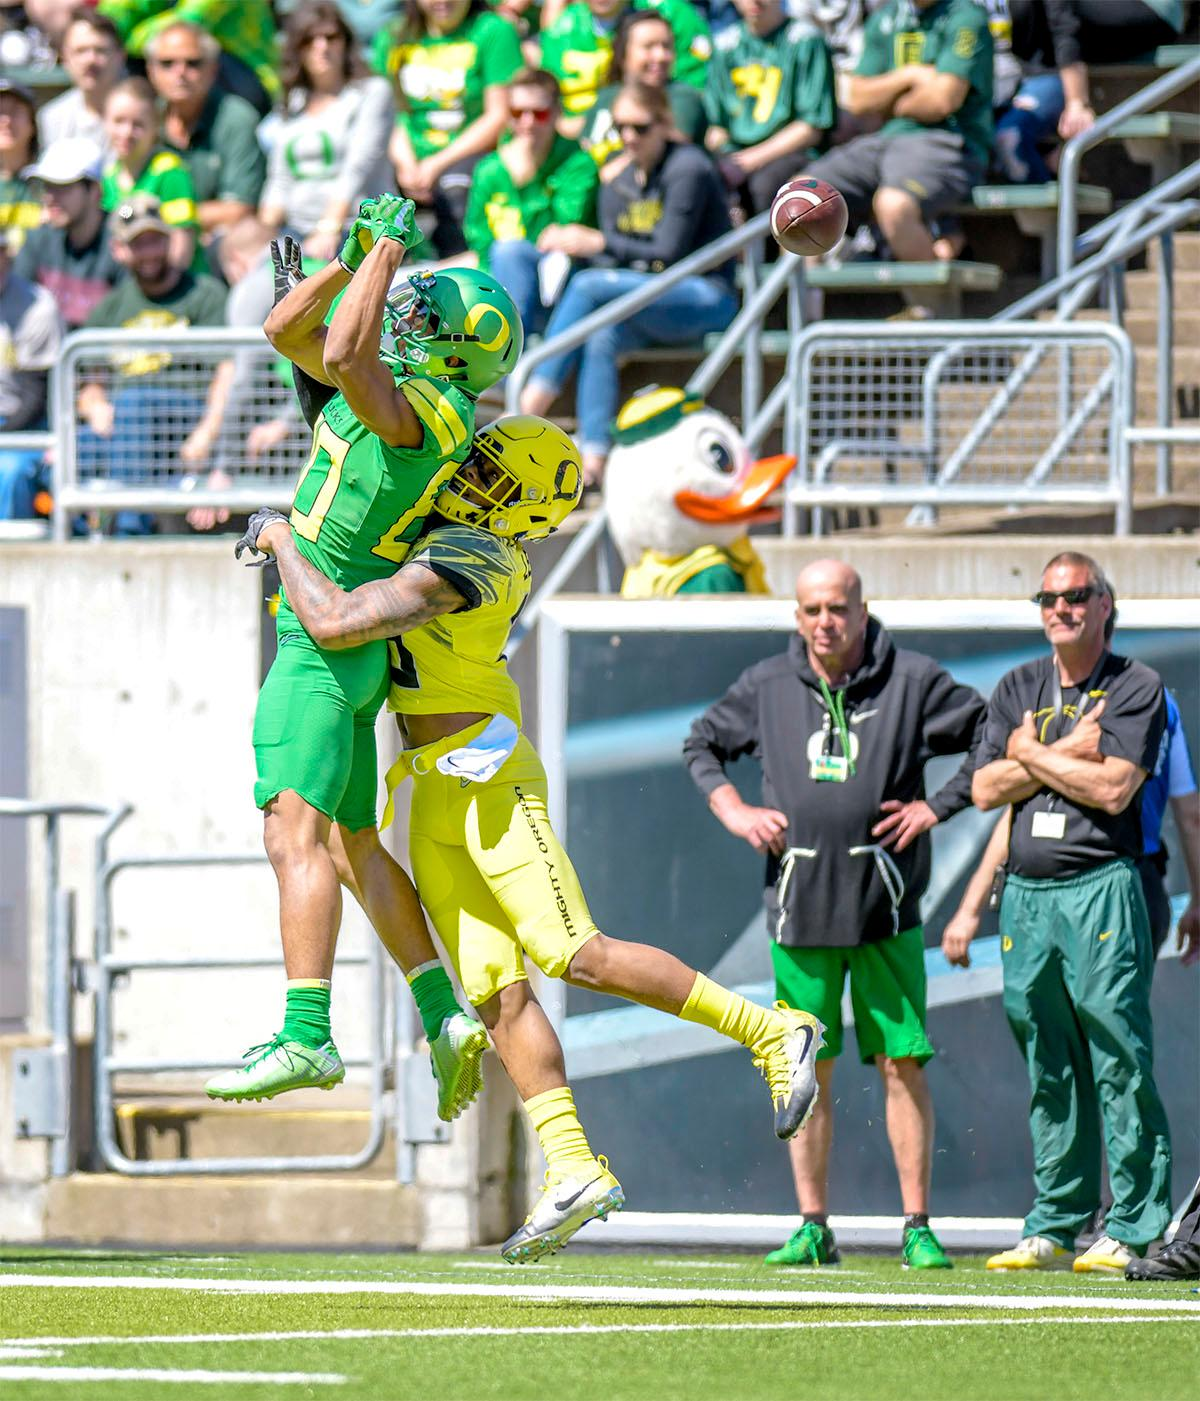 A Thunder places misses a catch in the end zone. The Thunder defeated the Lightning 59-24 in the Spring Game on Saturday at Autzen Stadium. Photo by August Frank